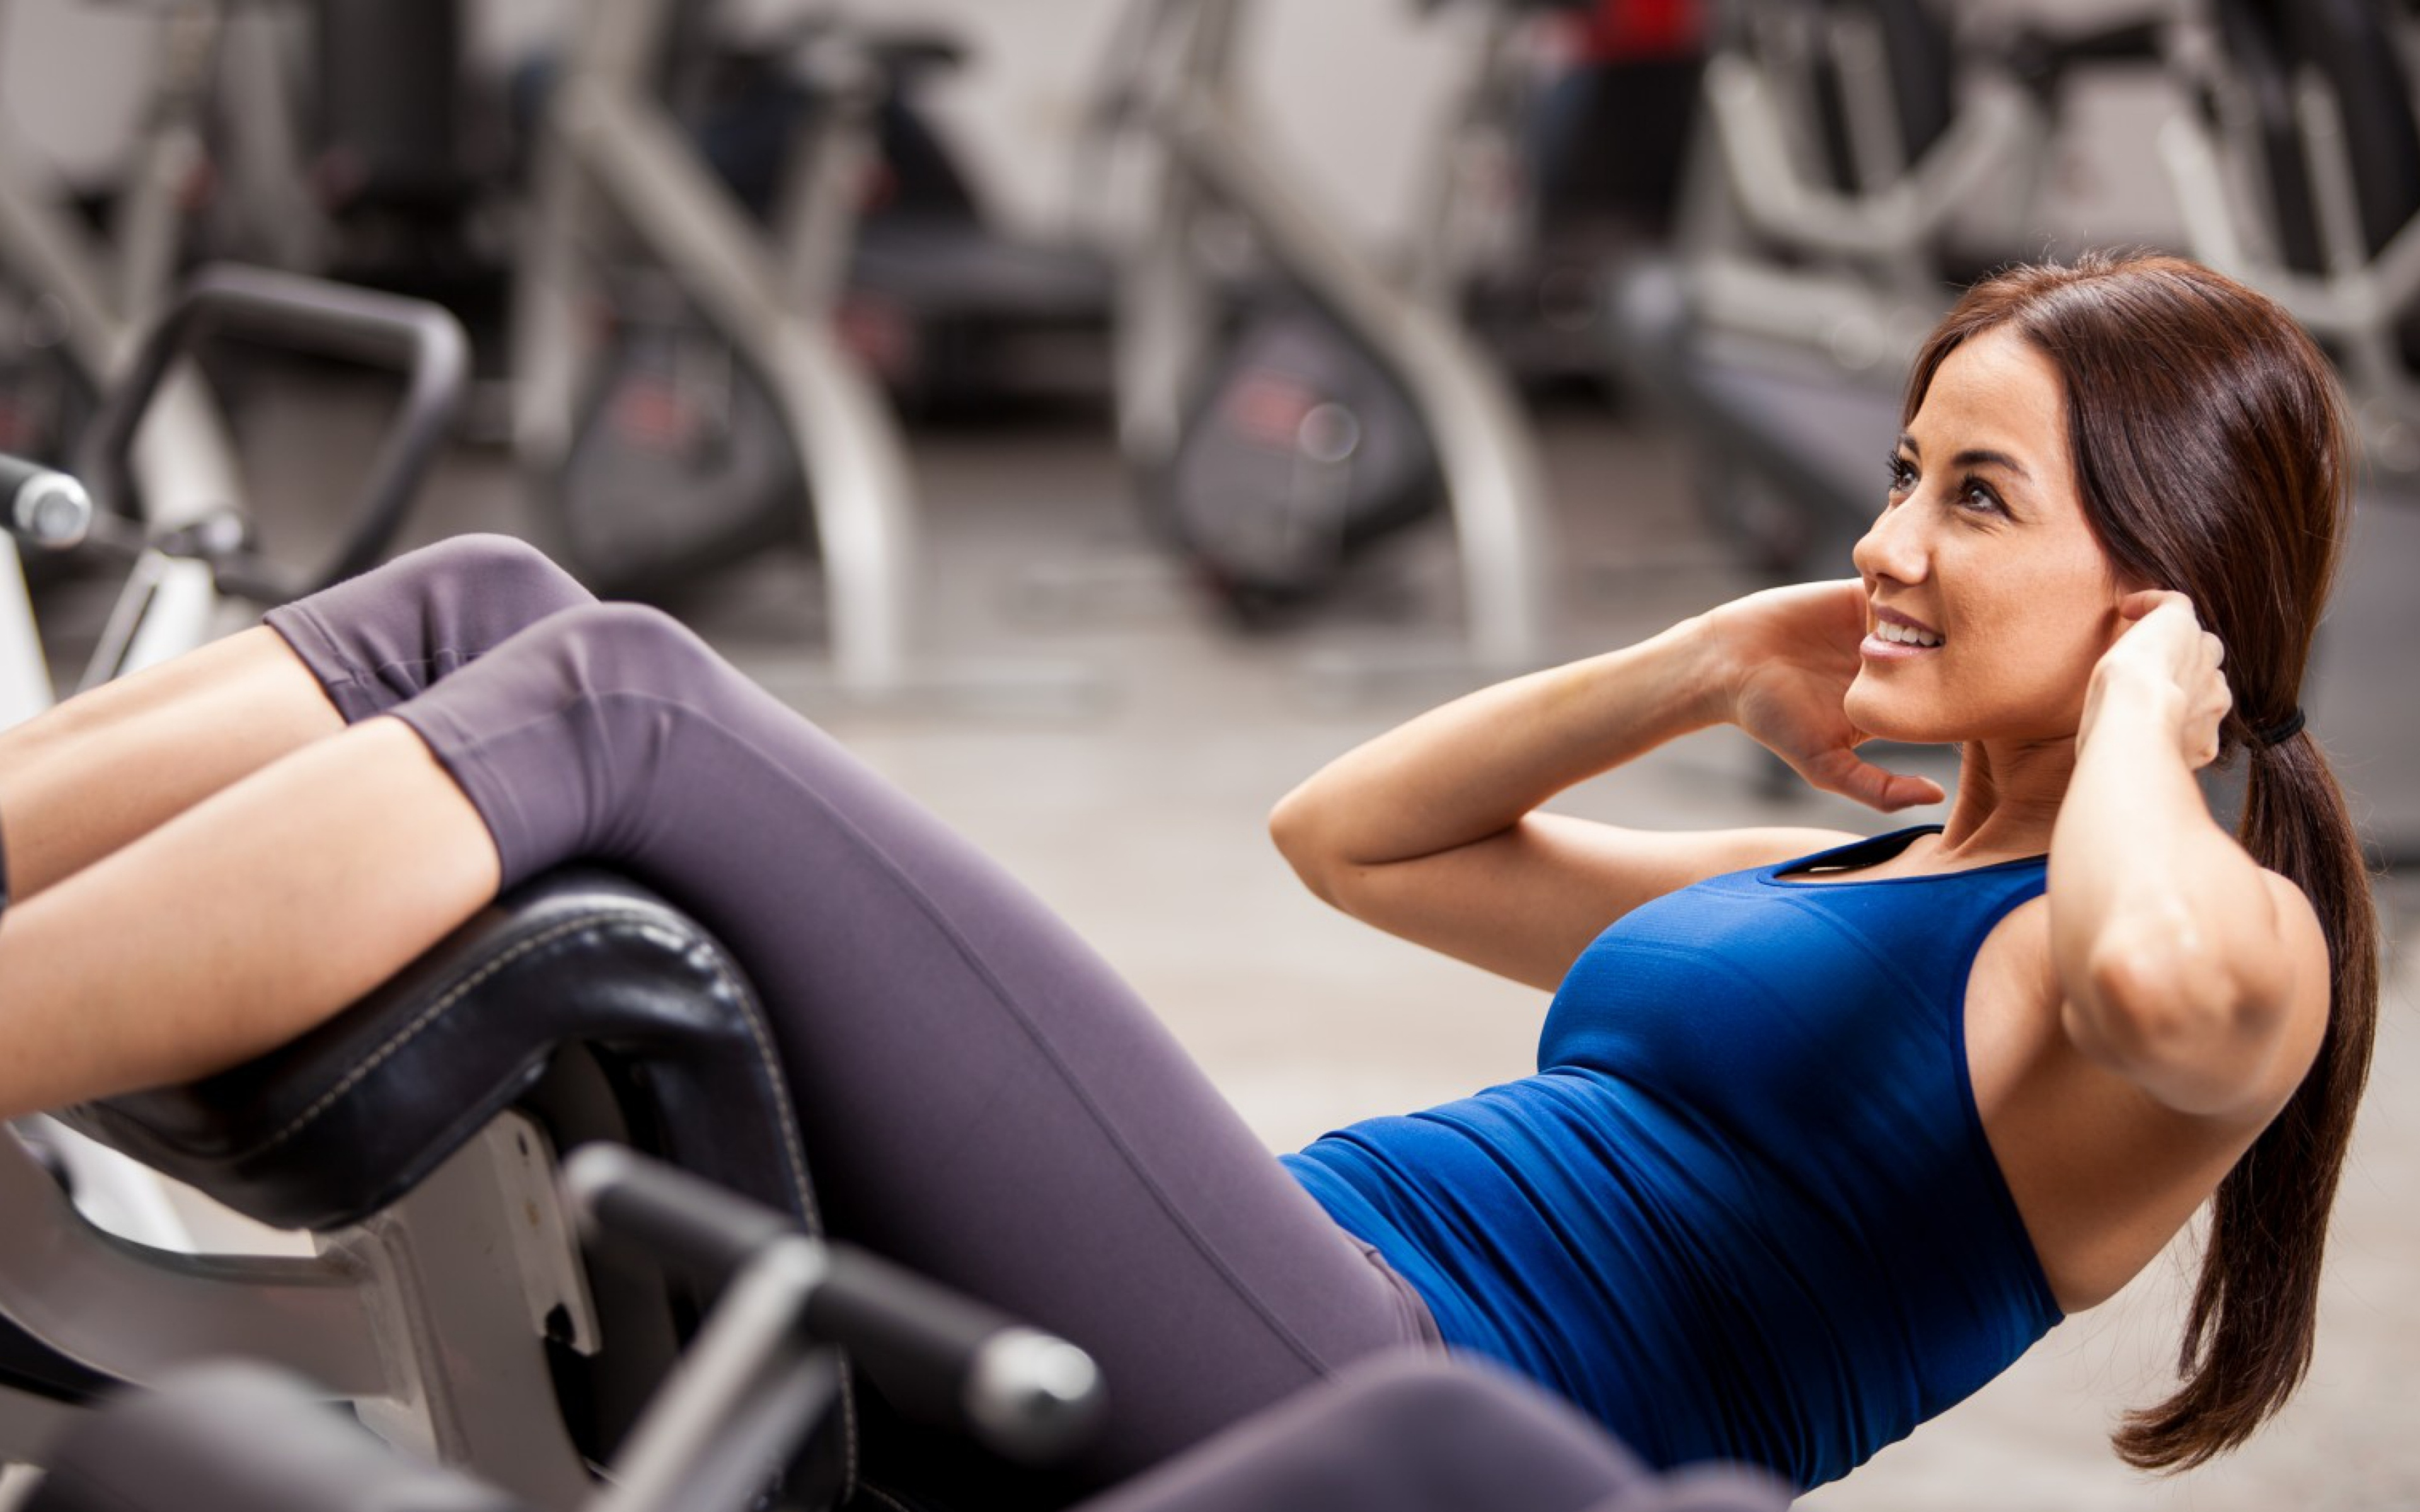 3840x2400 Gym Girl 4k HD 4k Wallpapers, Images